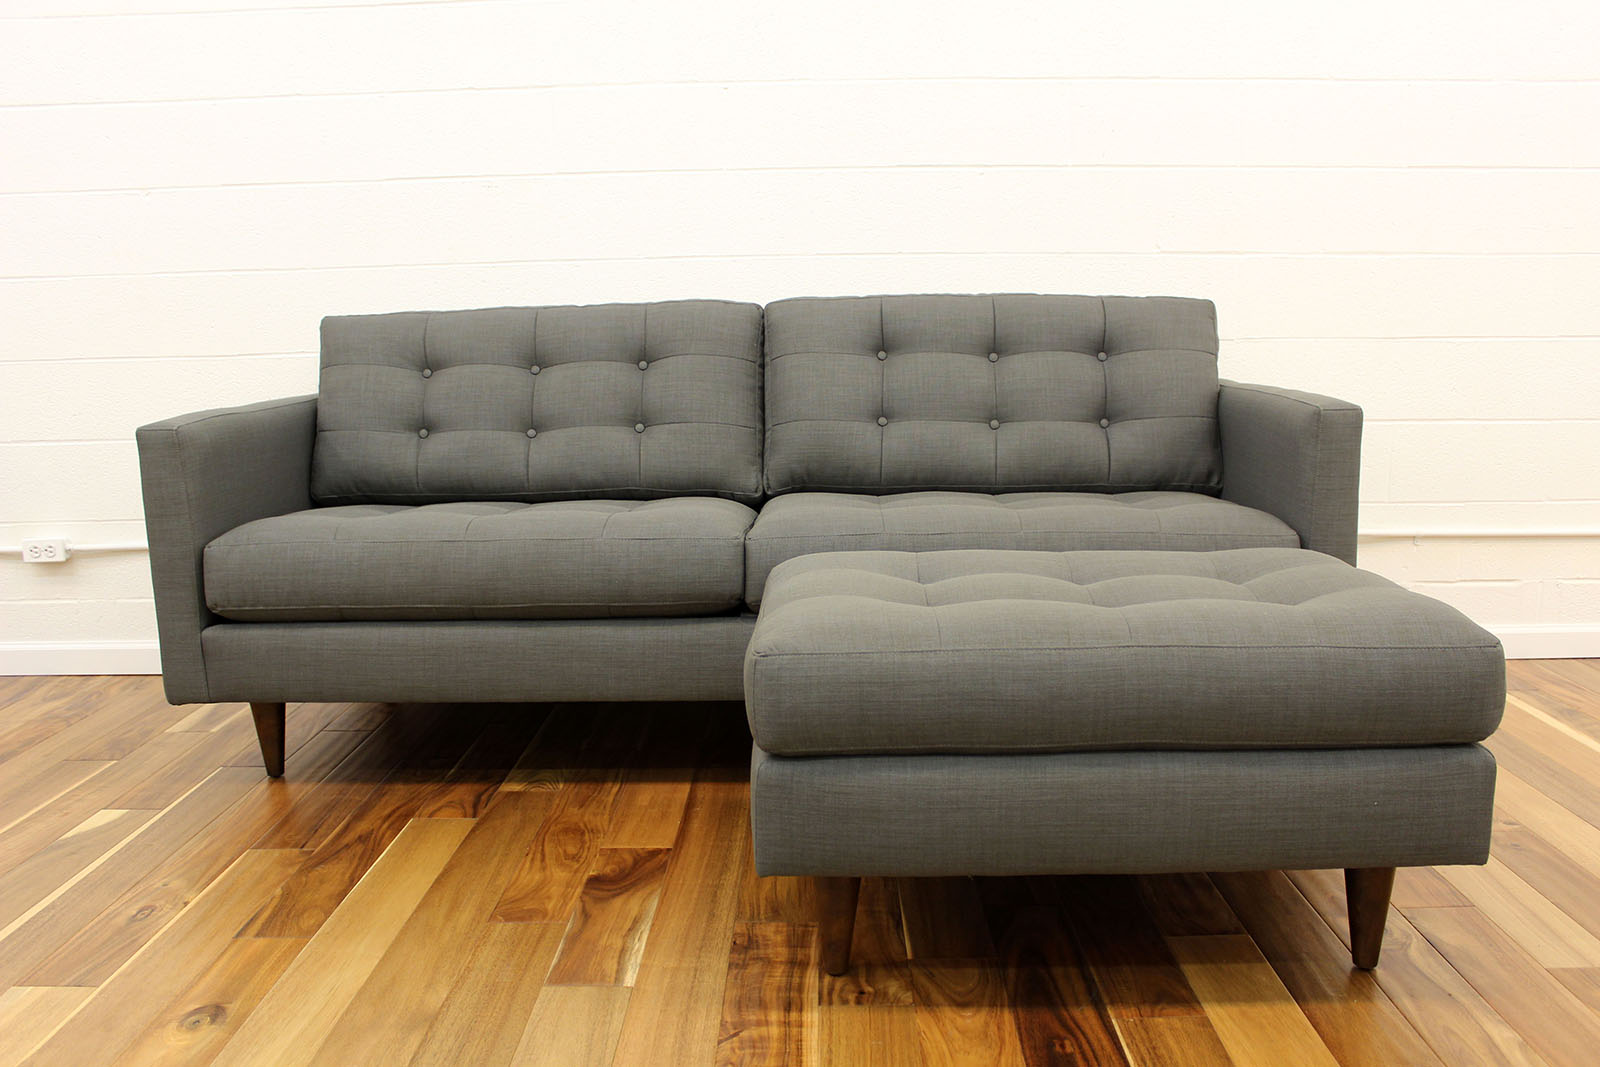 Ryan-Sofa-With-Ottoman